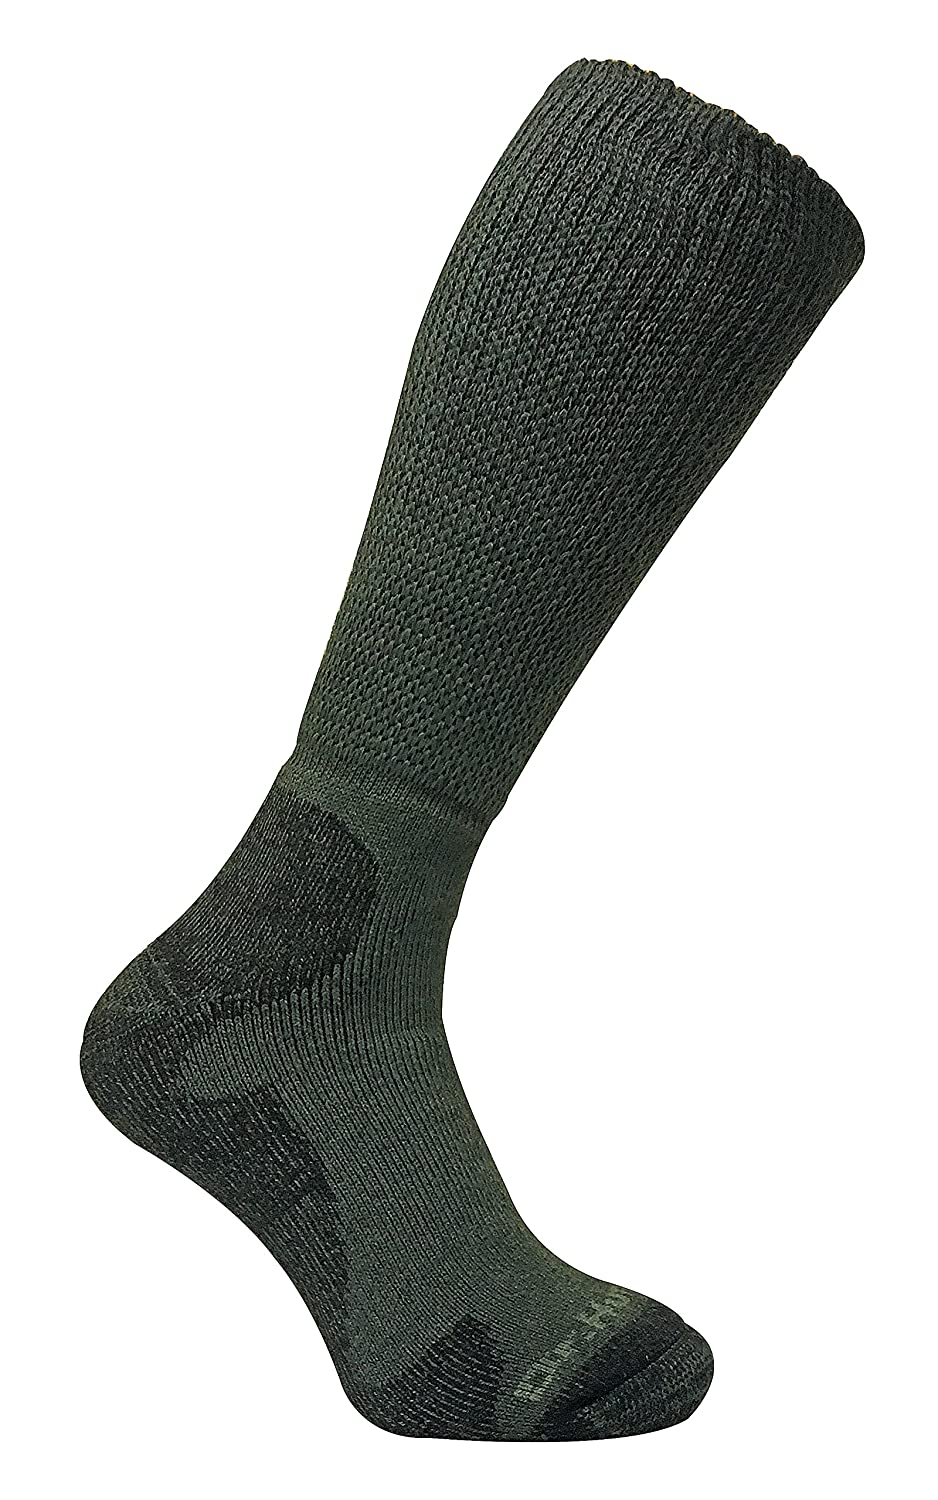 Dr Hunter - Mens Thick Extra Wide Loose Top Long Knee High Merino Wool Thermal Walking/Hiking Socks DHF